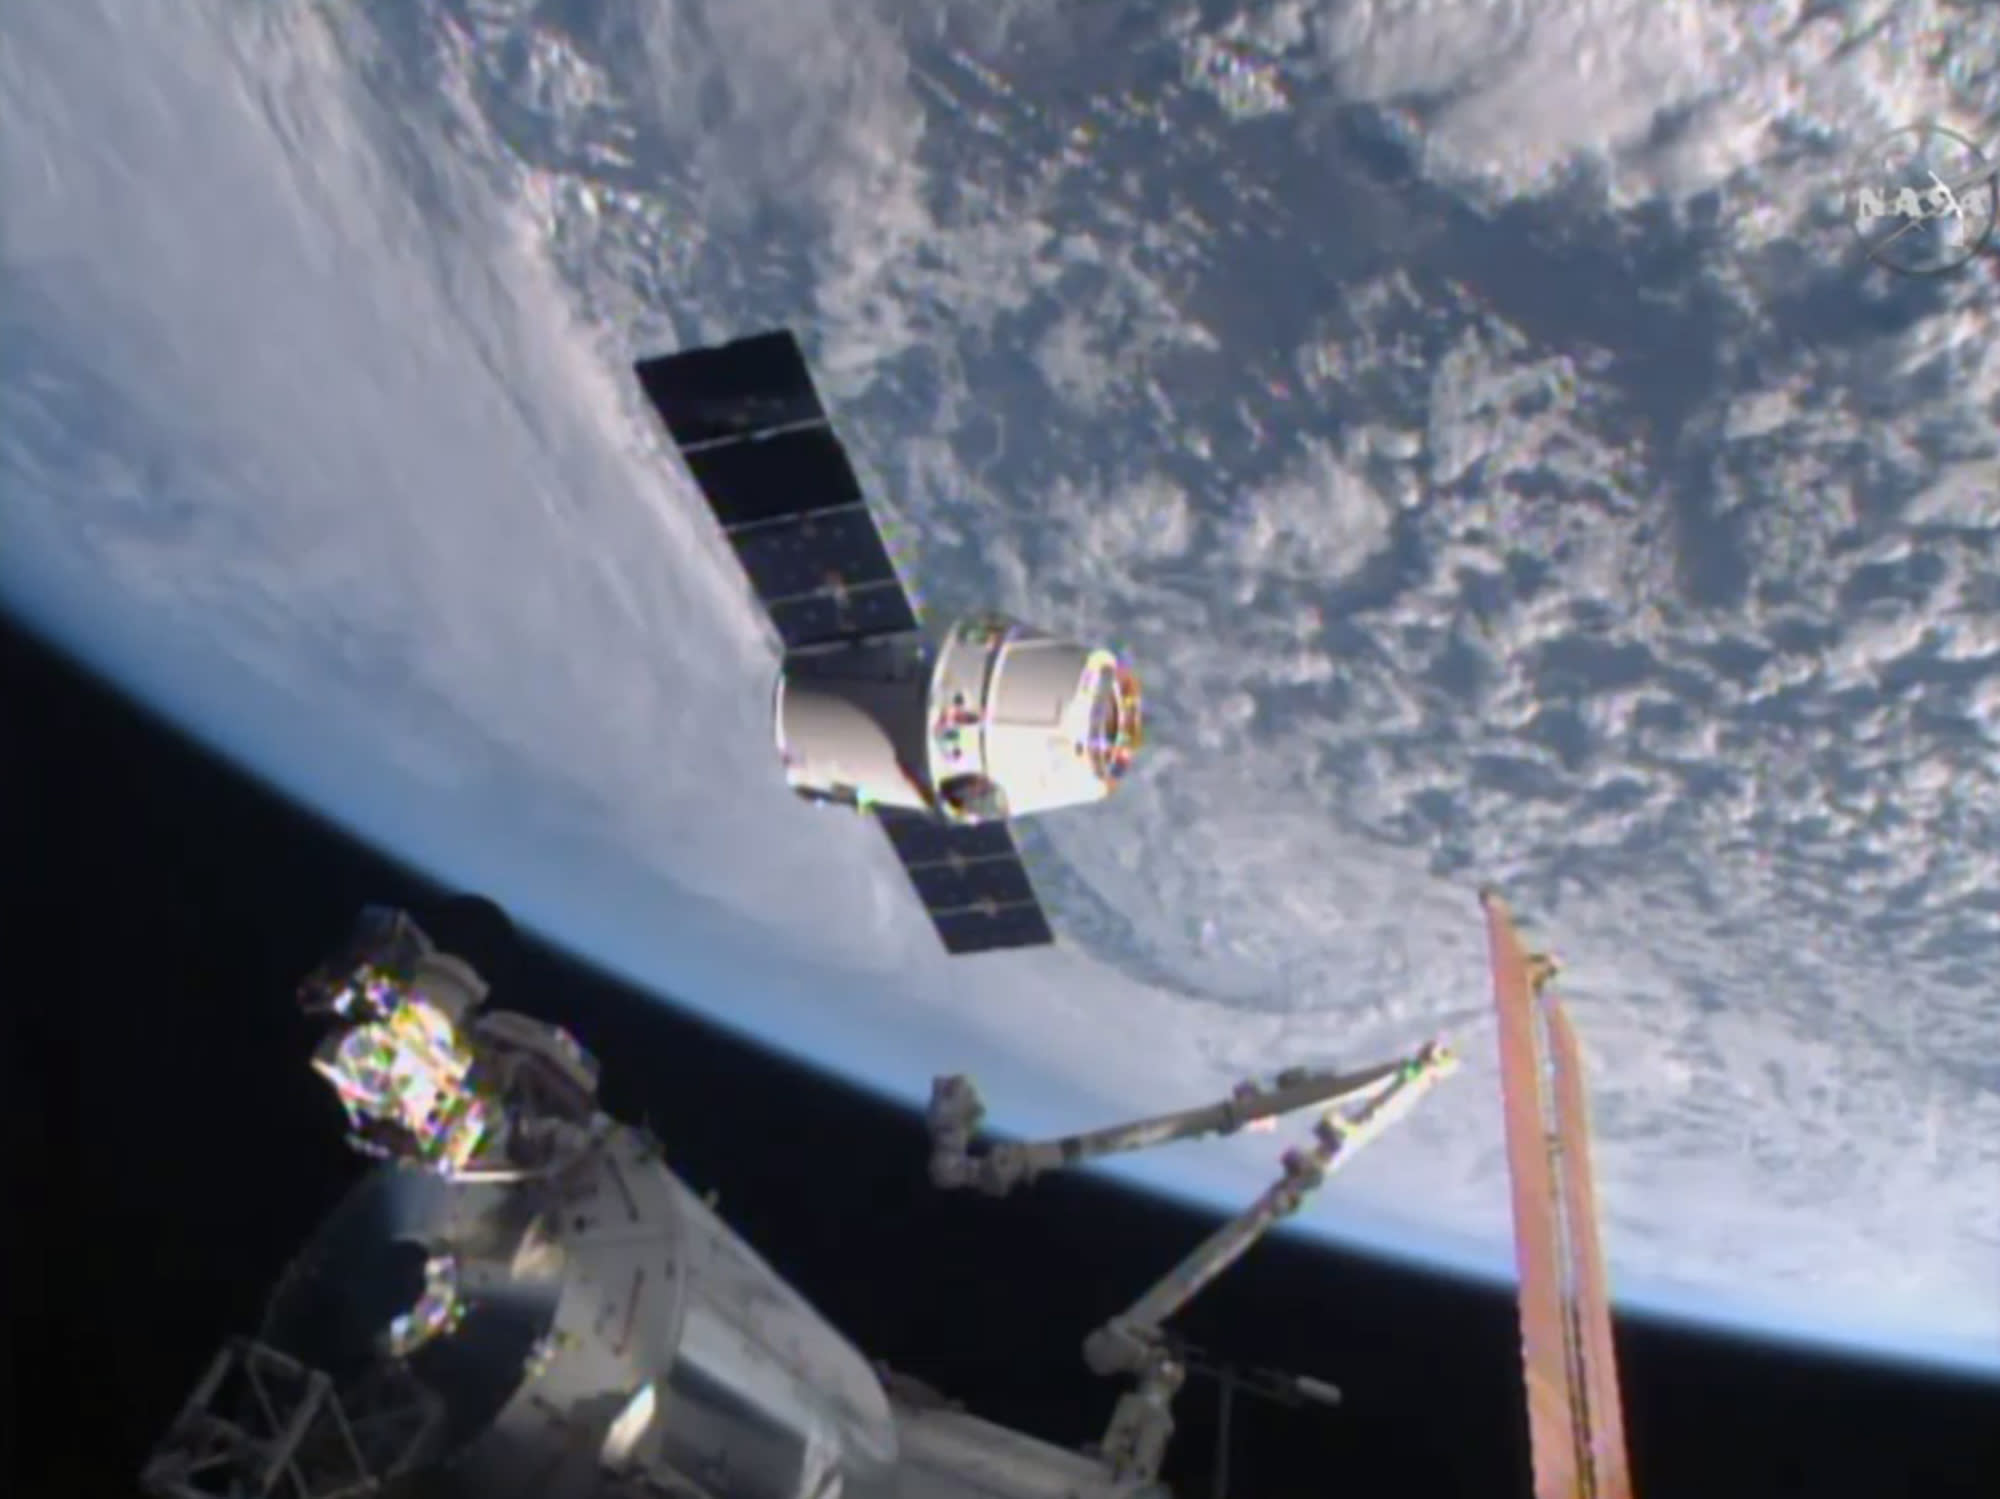 SpaceX shipment arrives at space station: 1st espresso maker